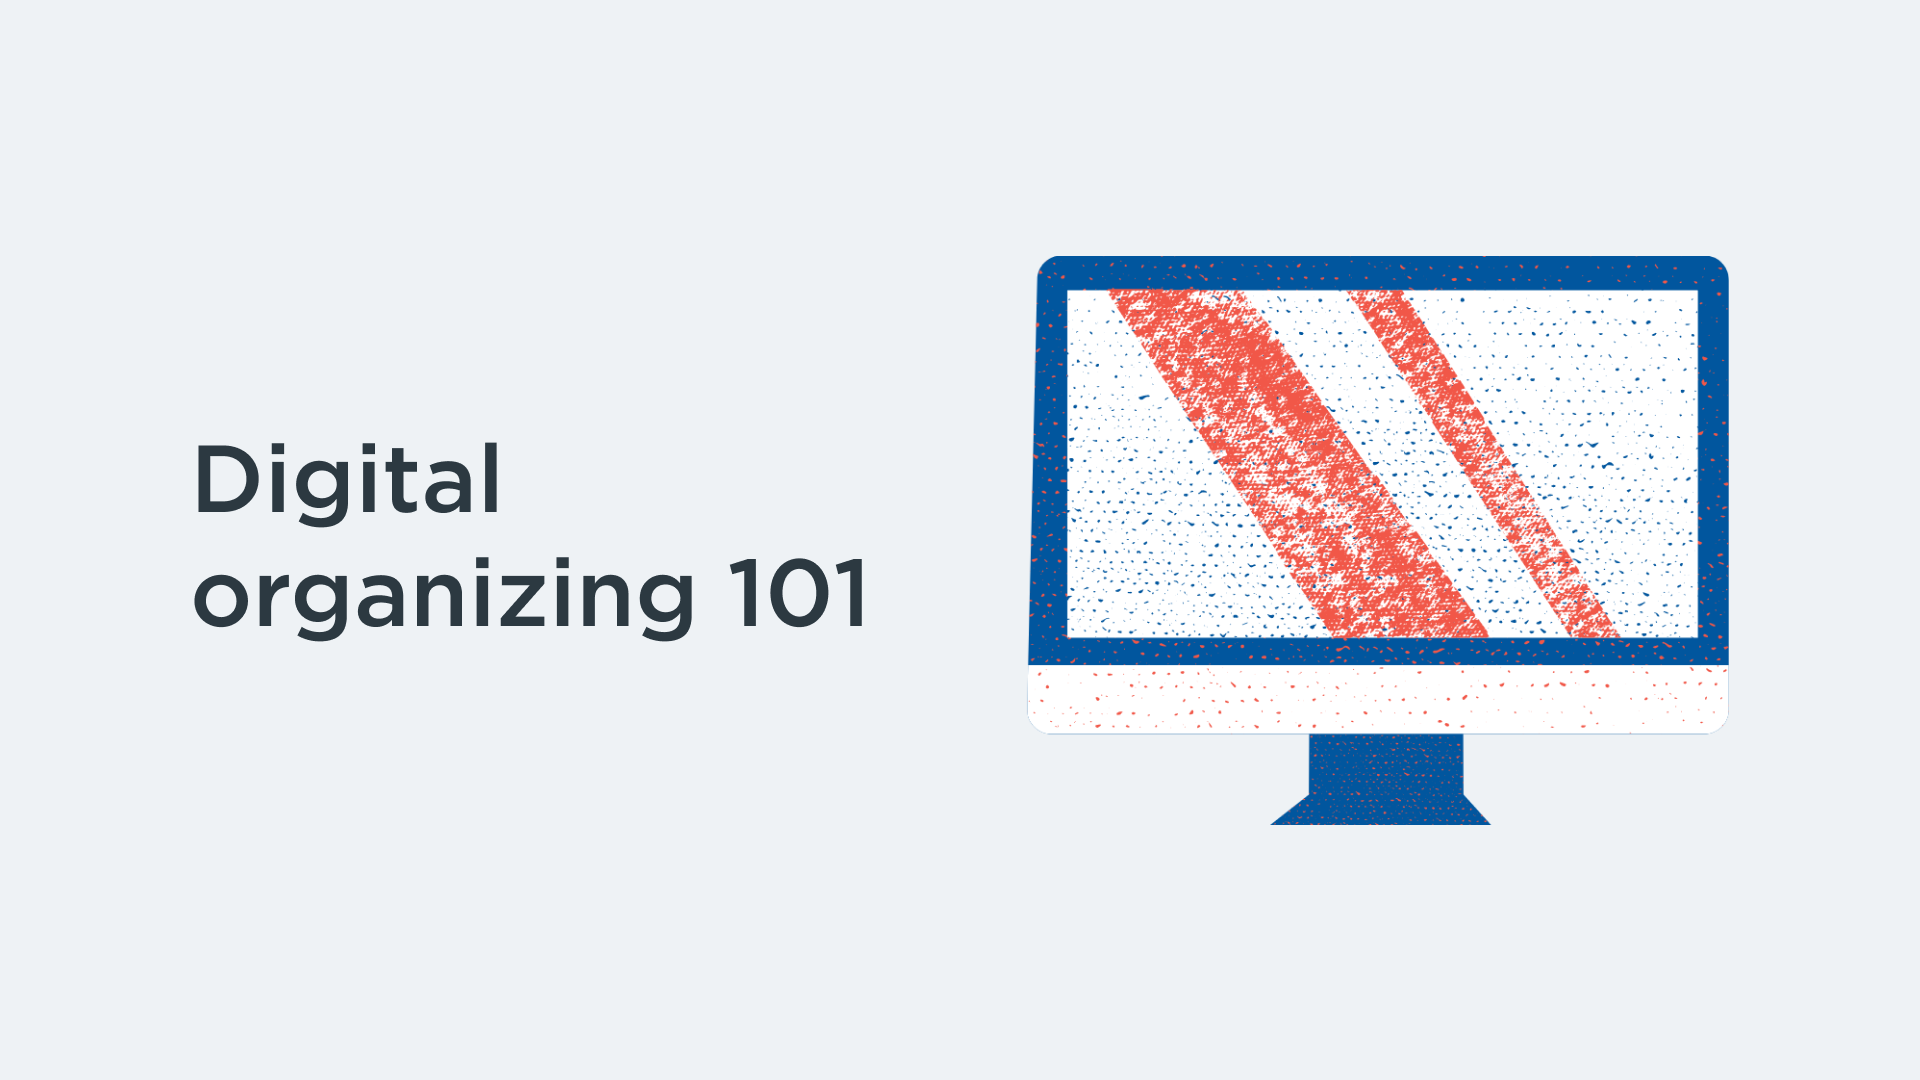 Digital organizing 101 course